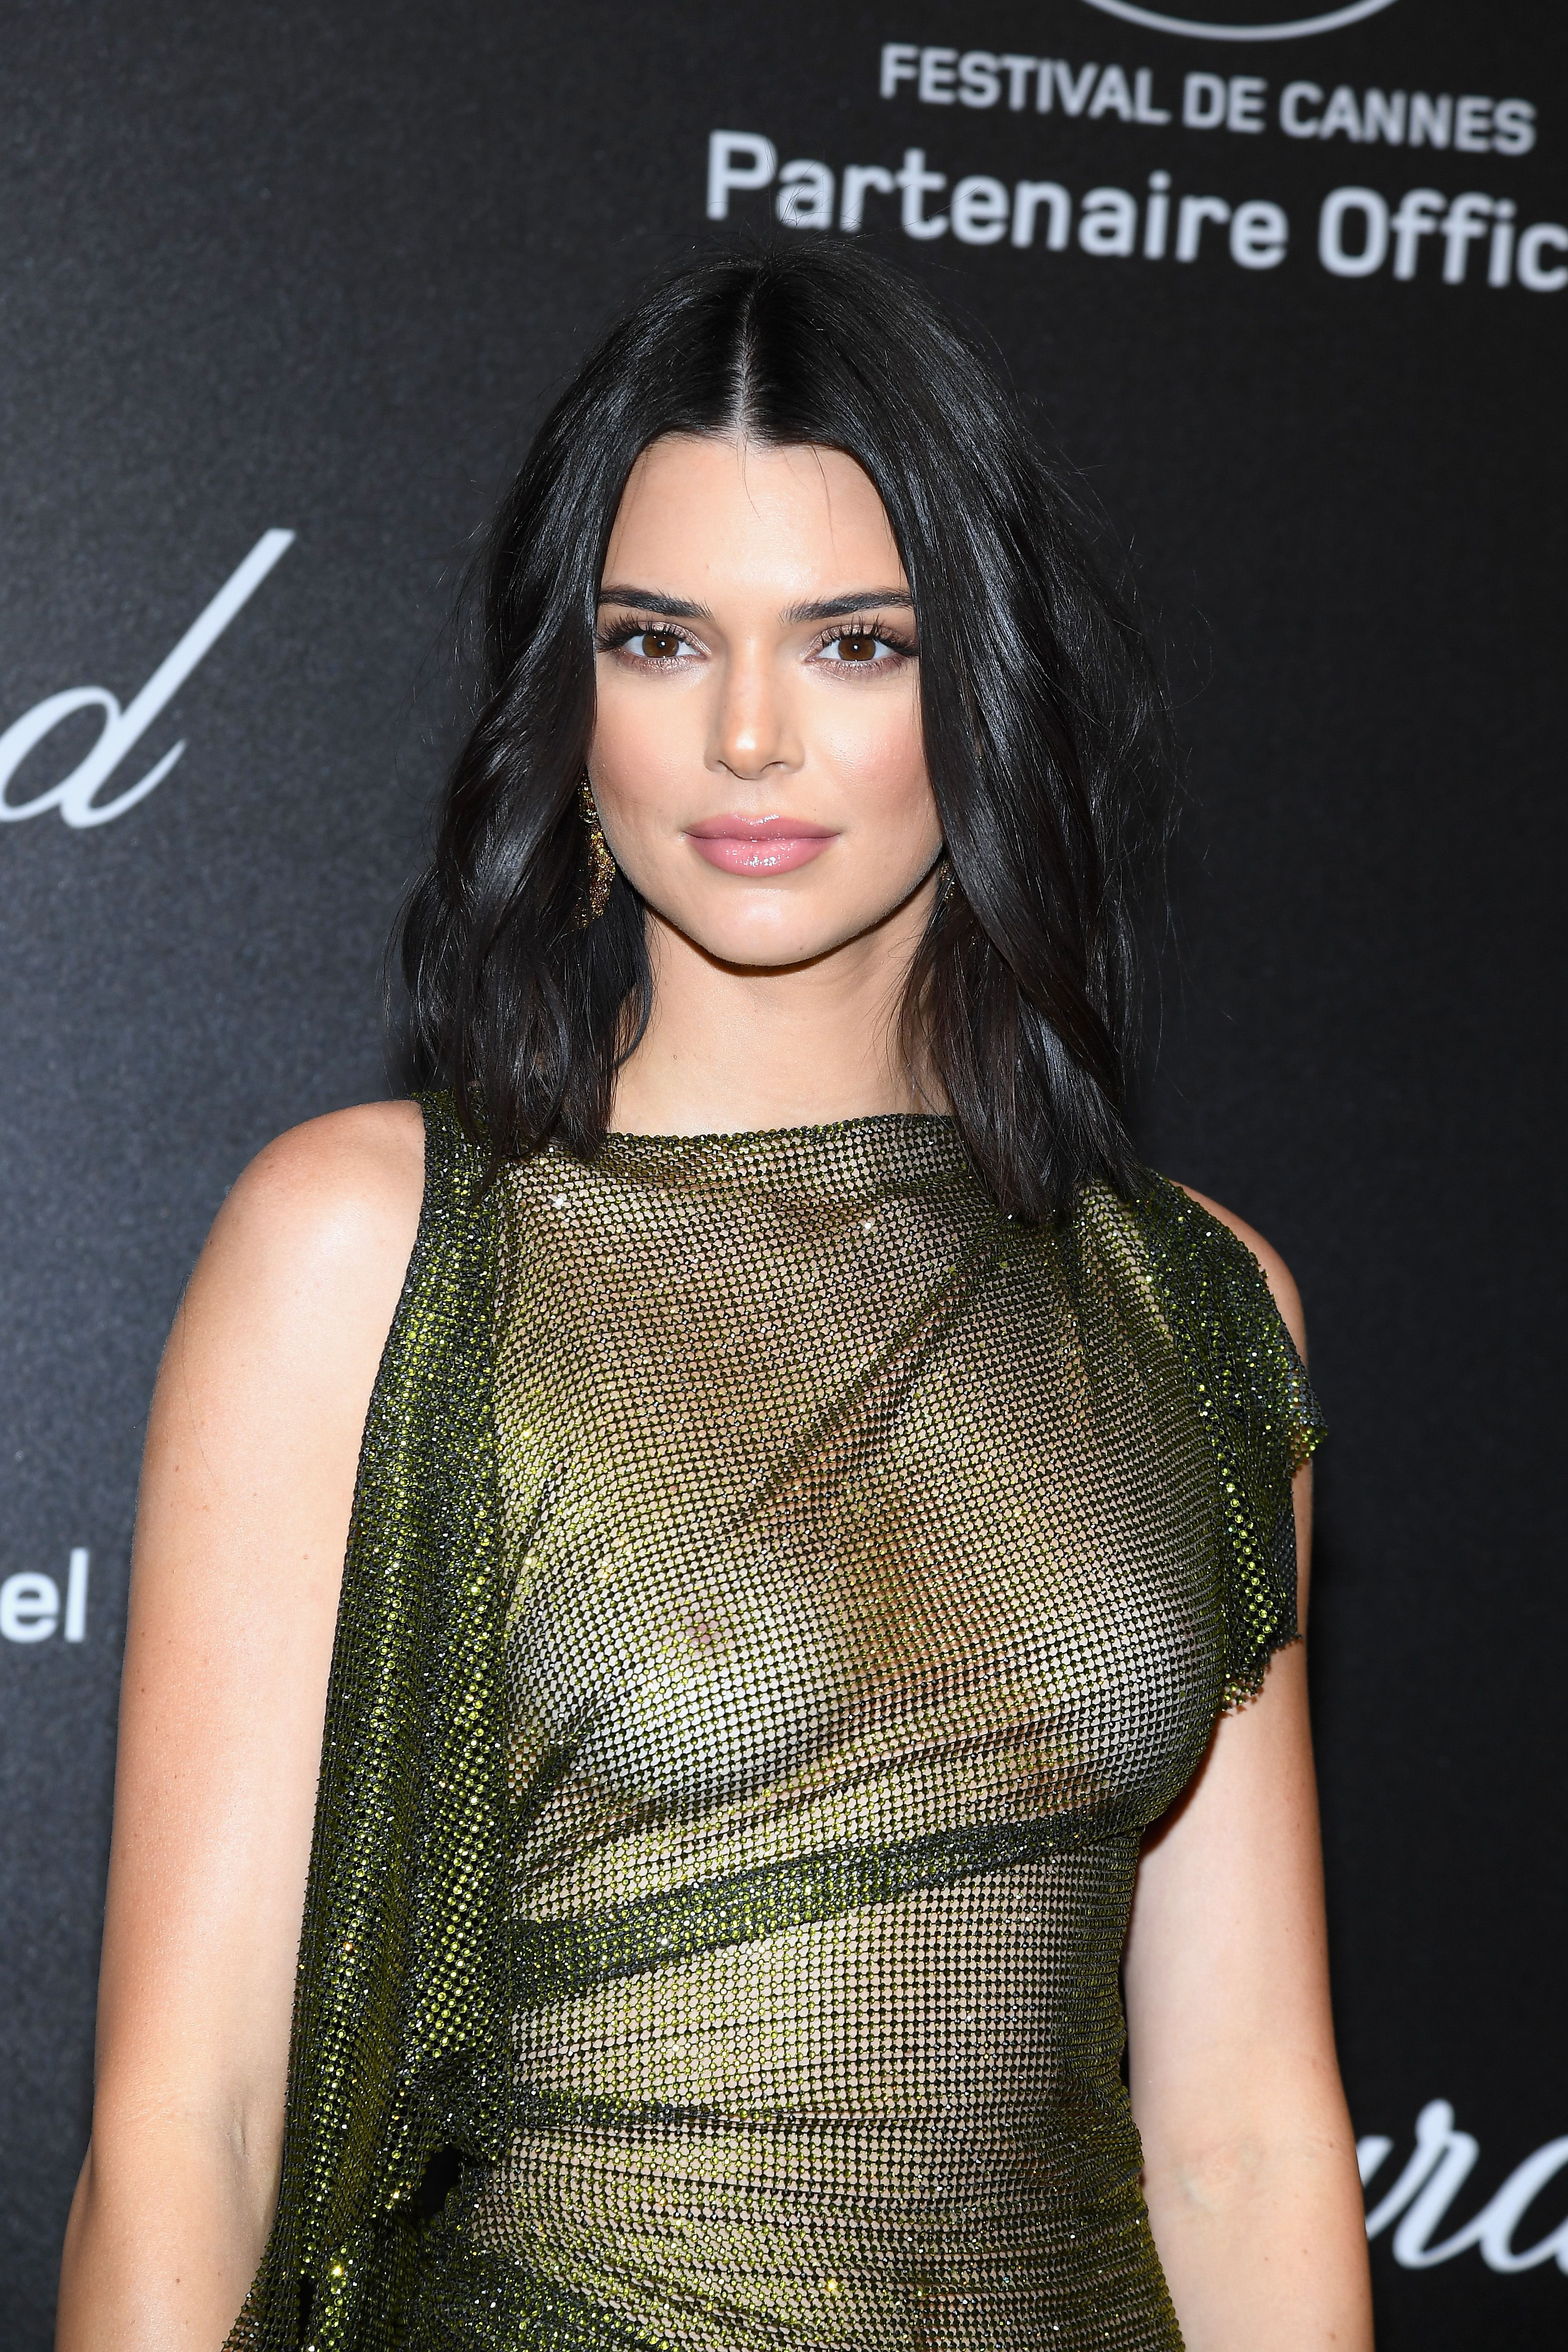 Kendall Jenner Wears A Completely See Through Dress In Cannes